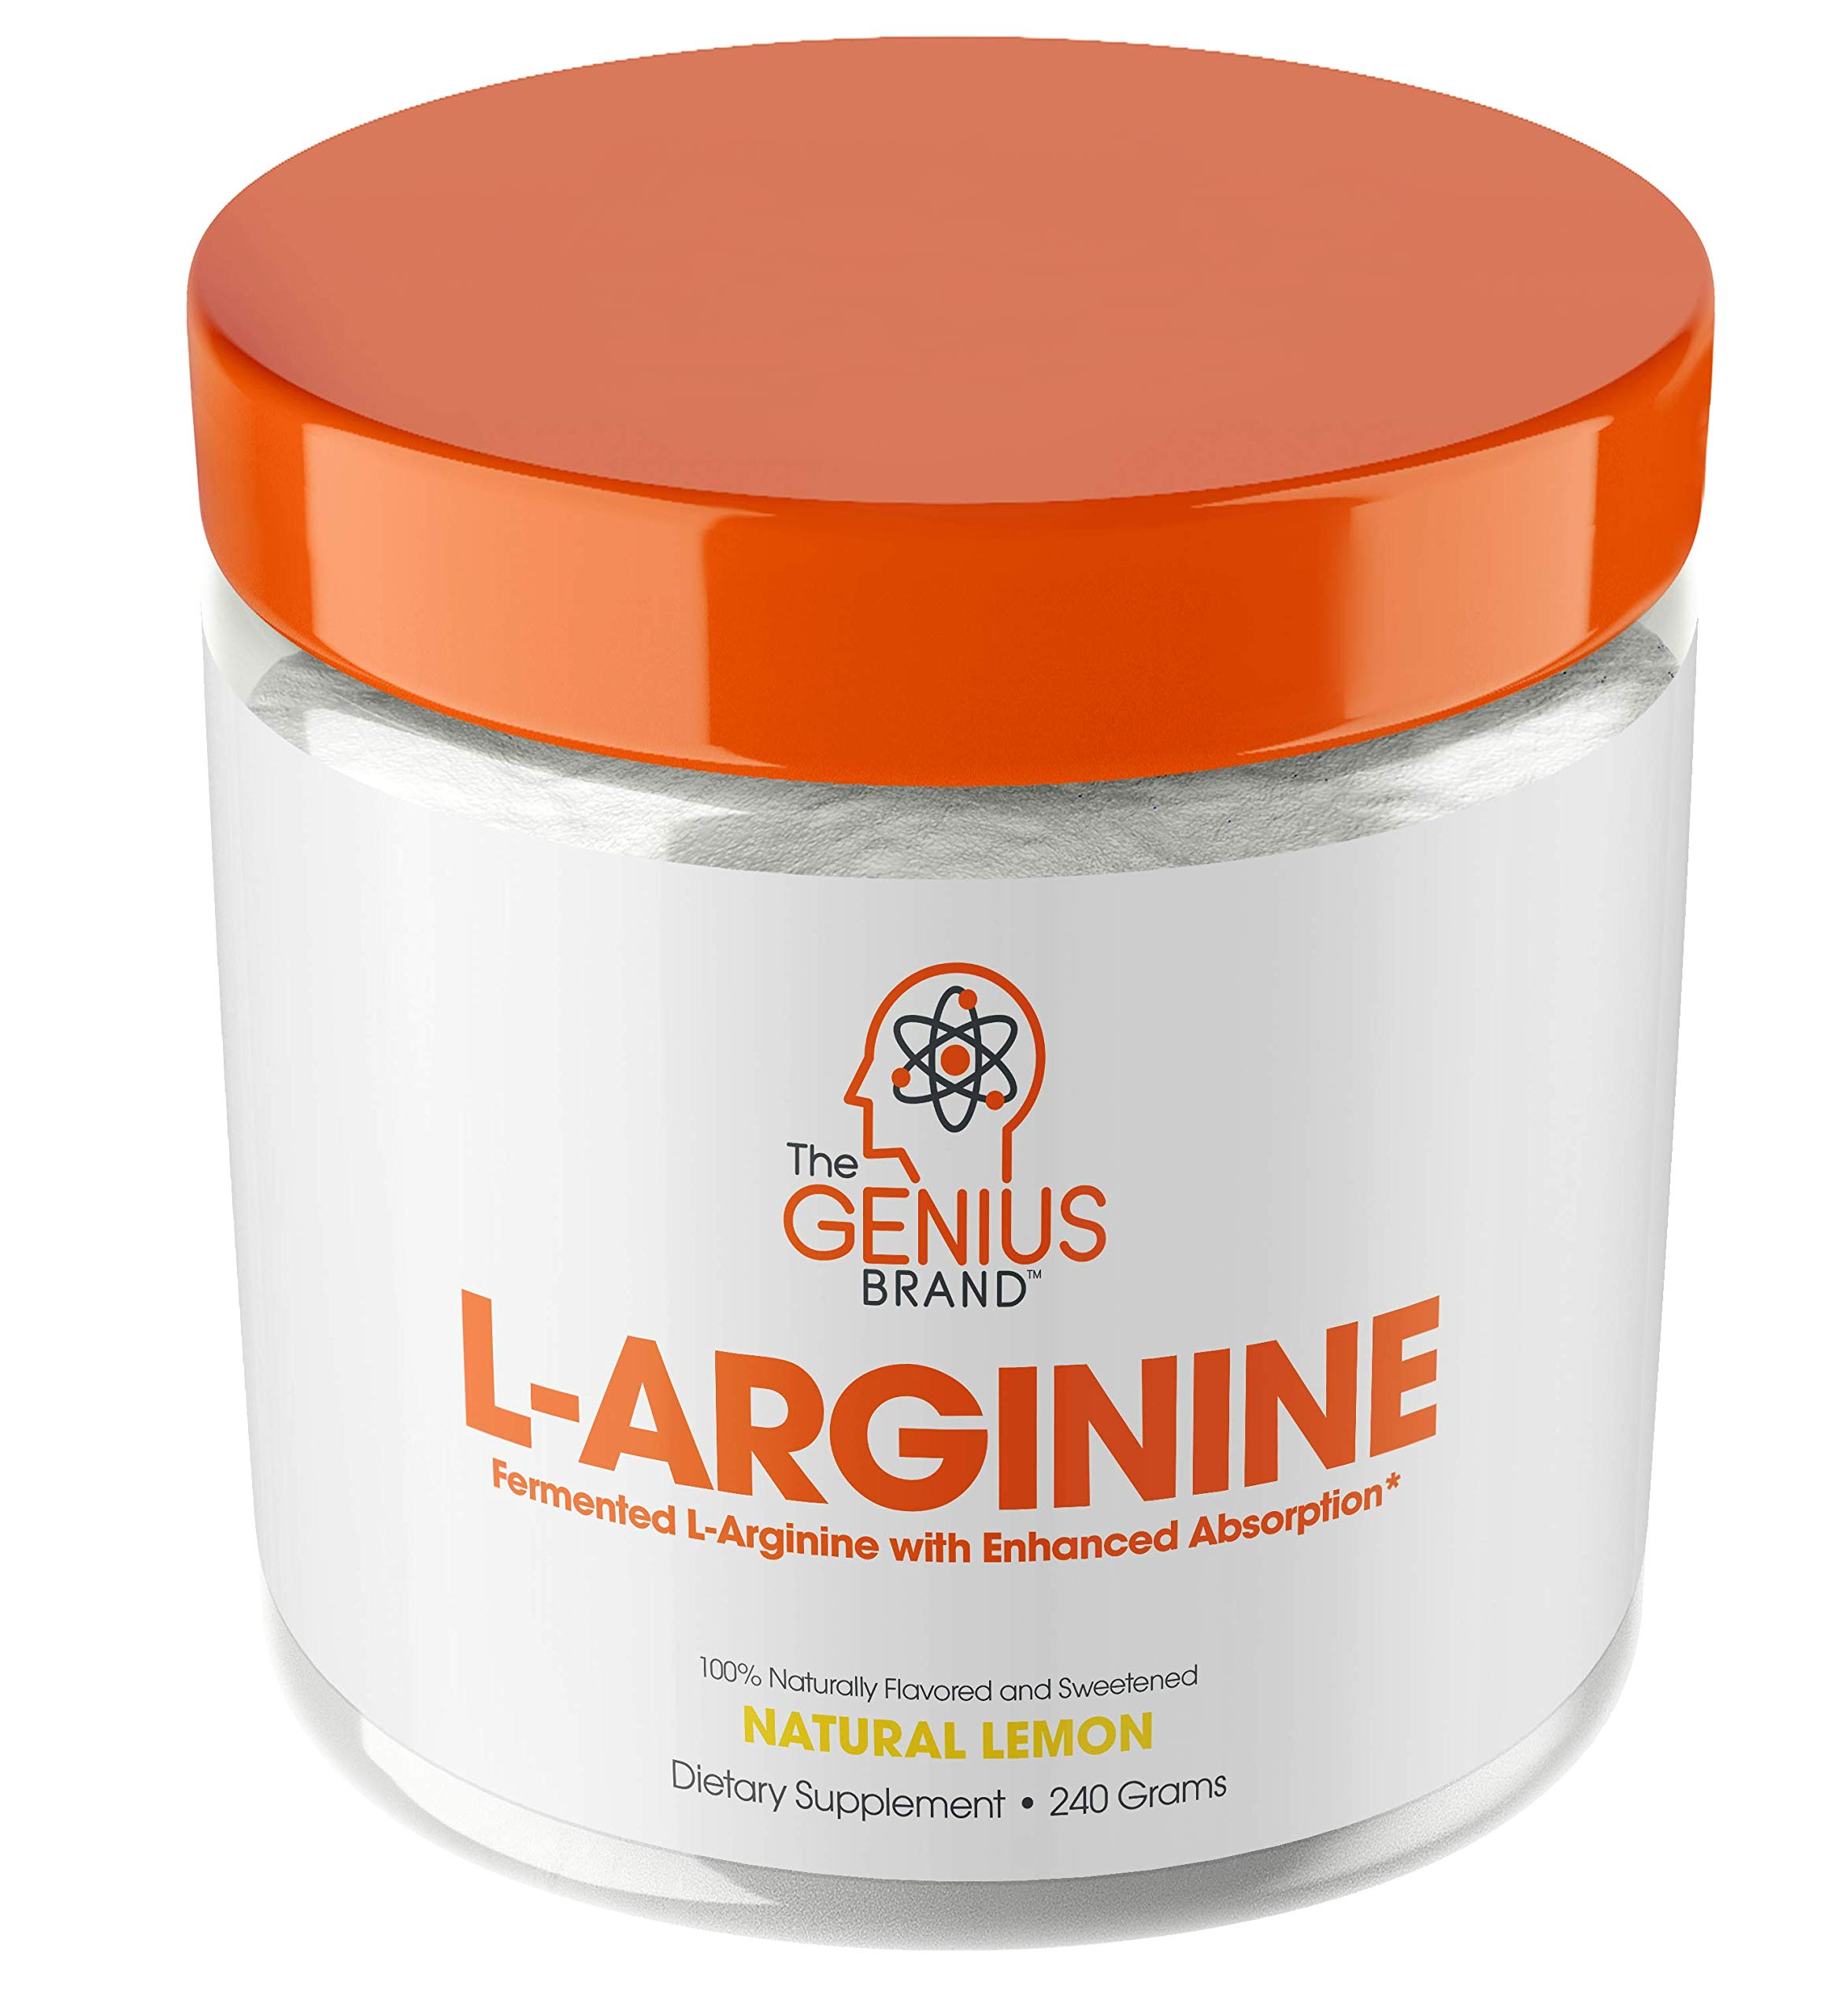 Genius L Arginine Powder - Fermented L-Arginine Nitric Oxide Supplement, Natural Muscle Builder & NO Booster for Healthy Blood Pressure, Protein Synthesis and Strength Building, Lemon, 30 Sv by The Genius Brand